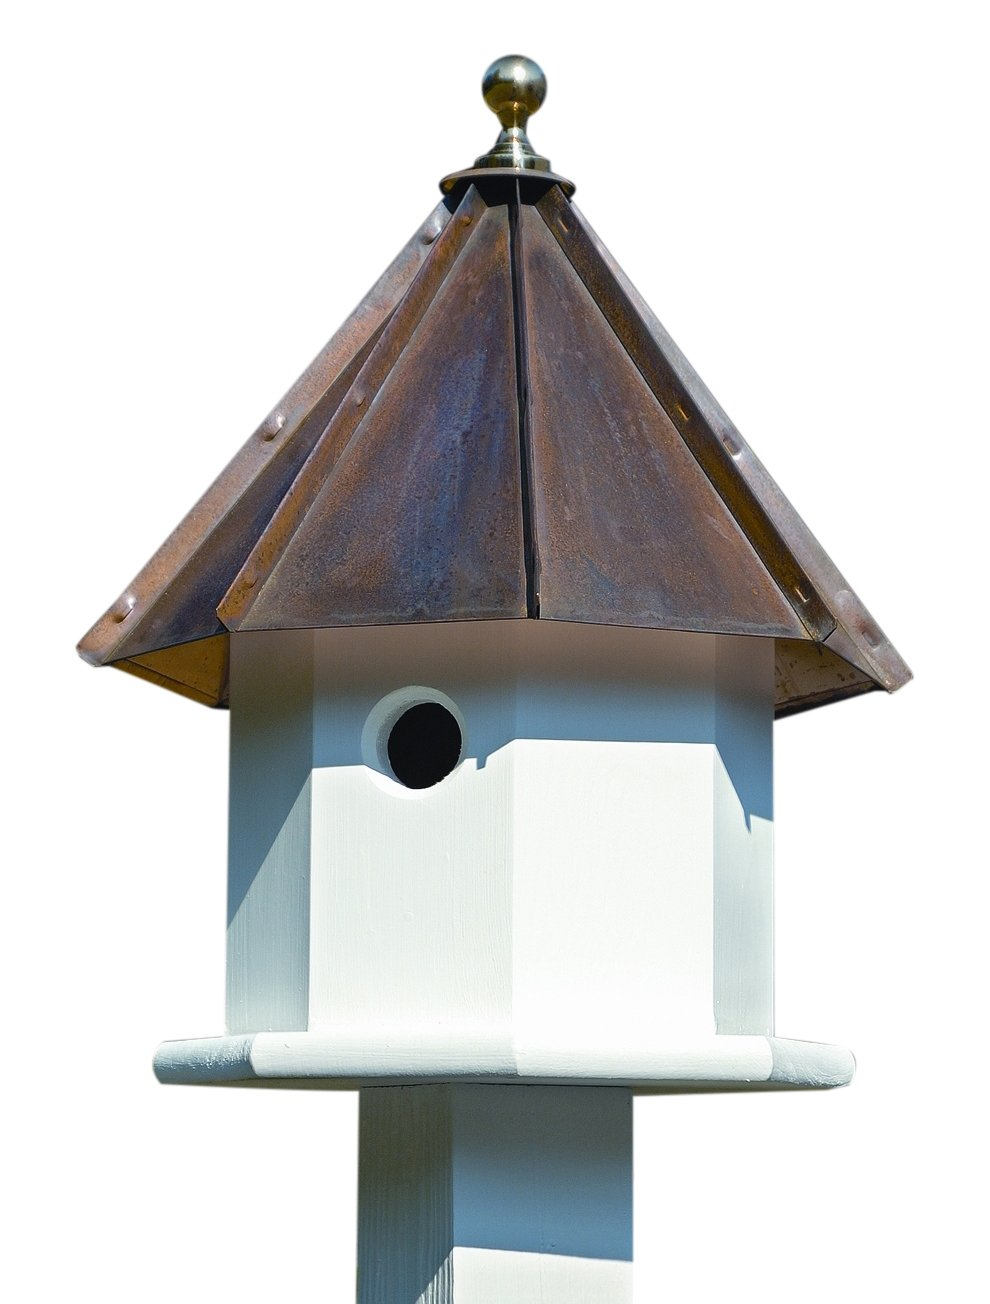 Oct-Avian Bird House w White Brown Copper Roof